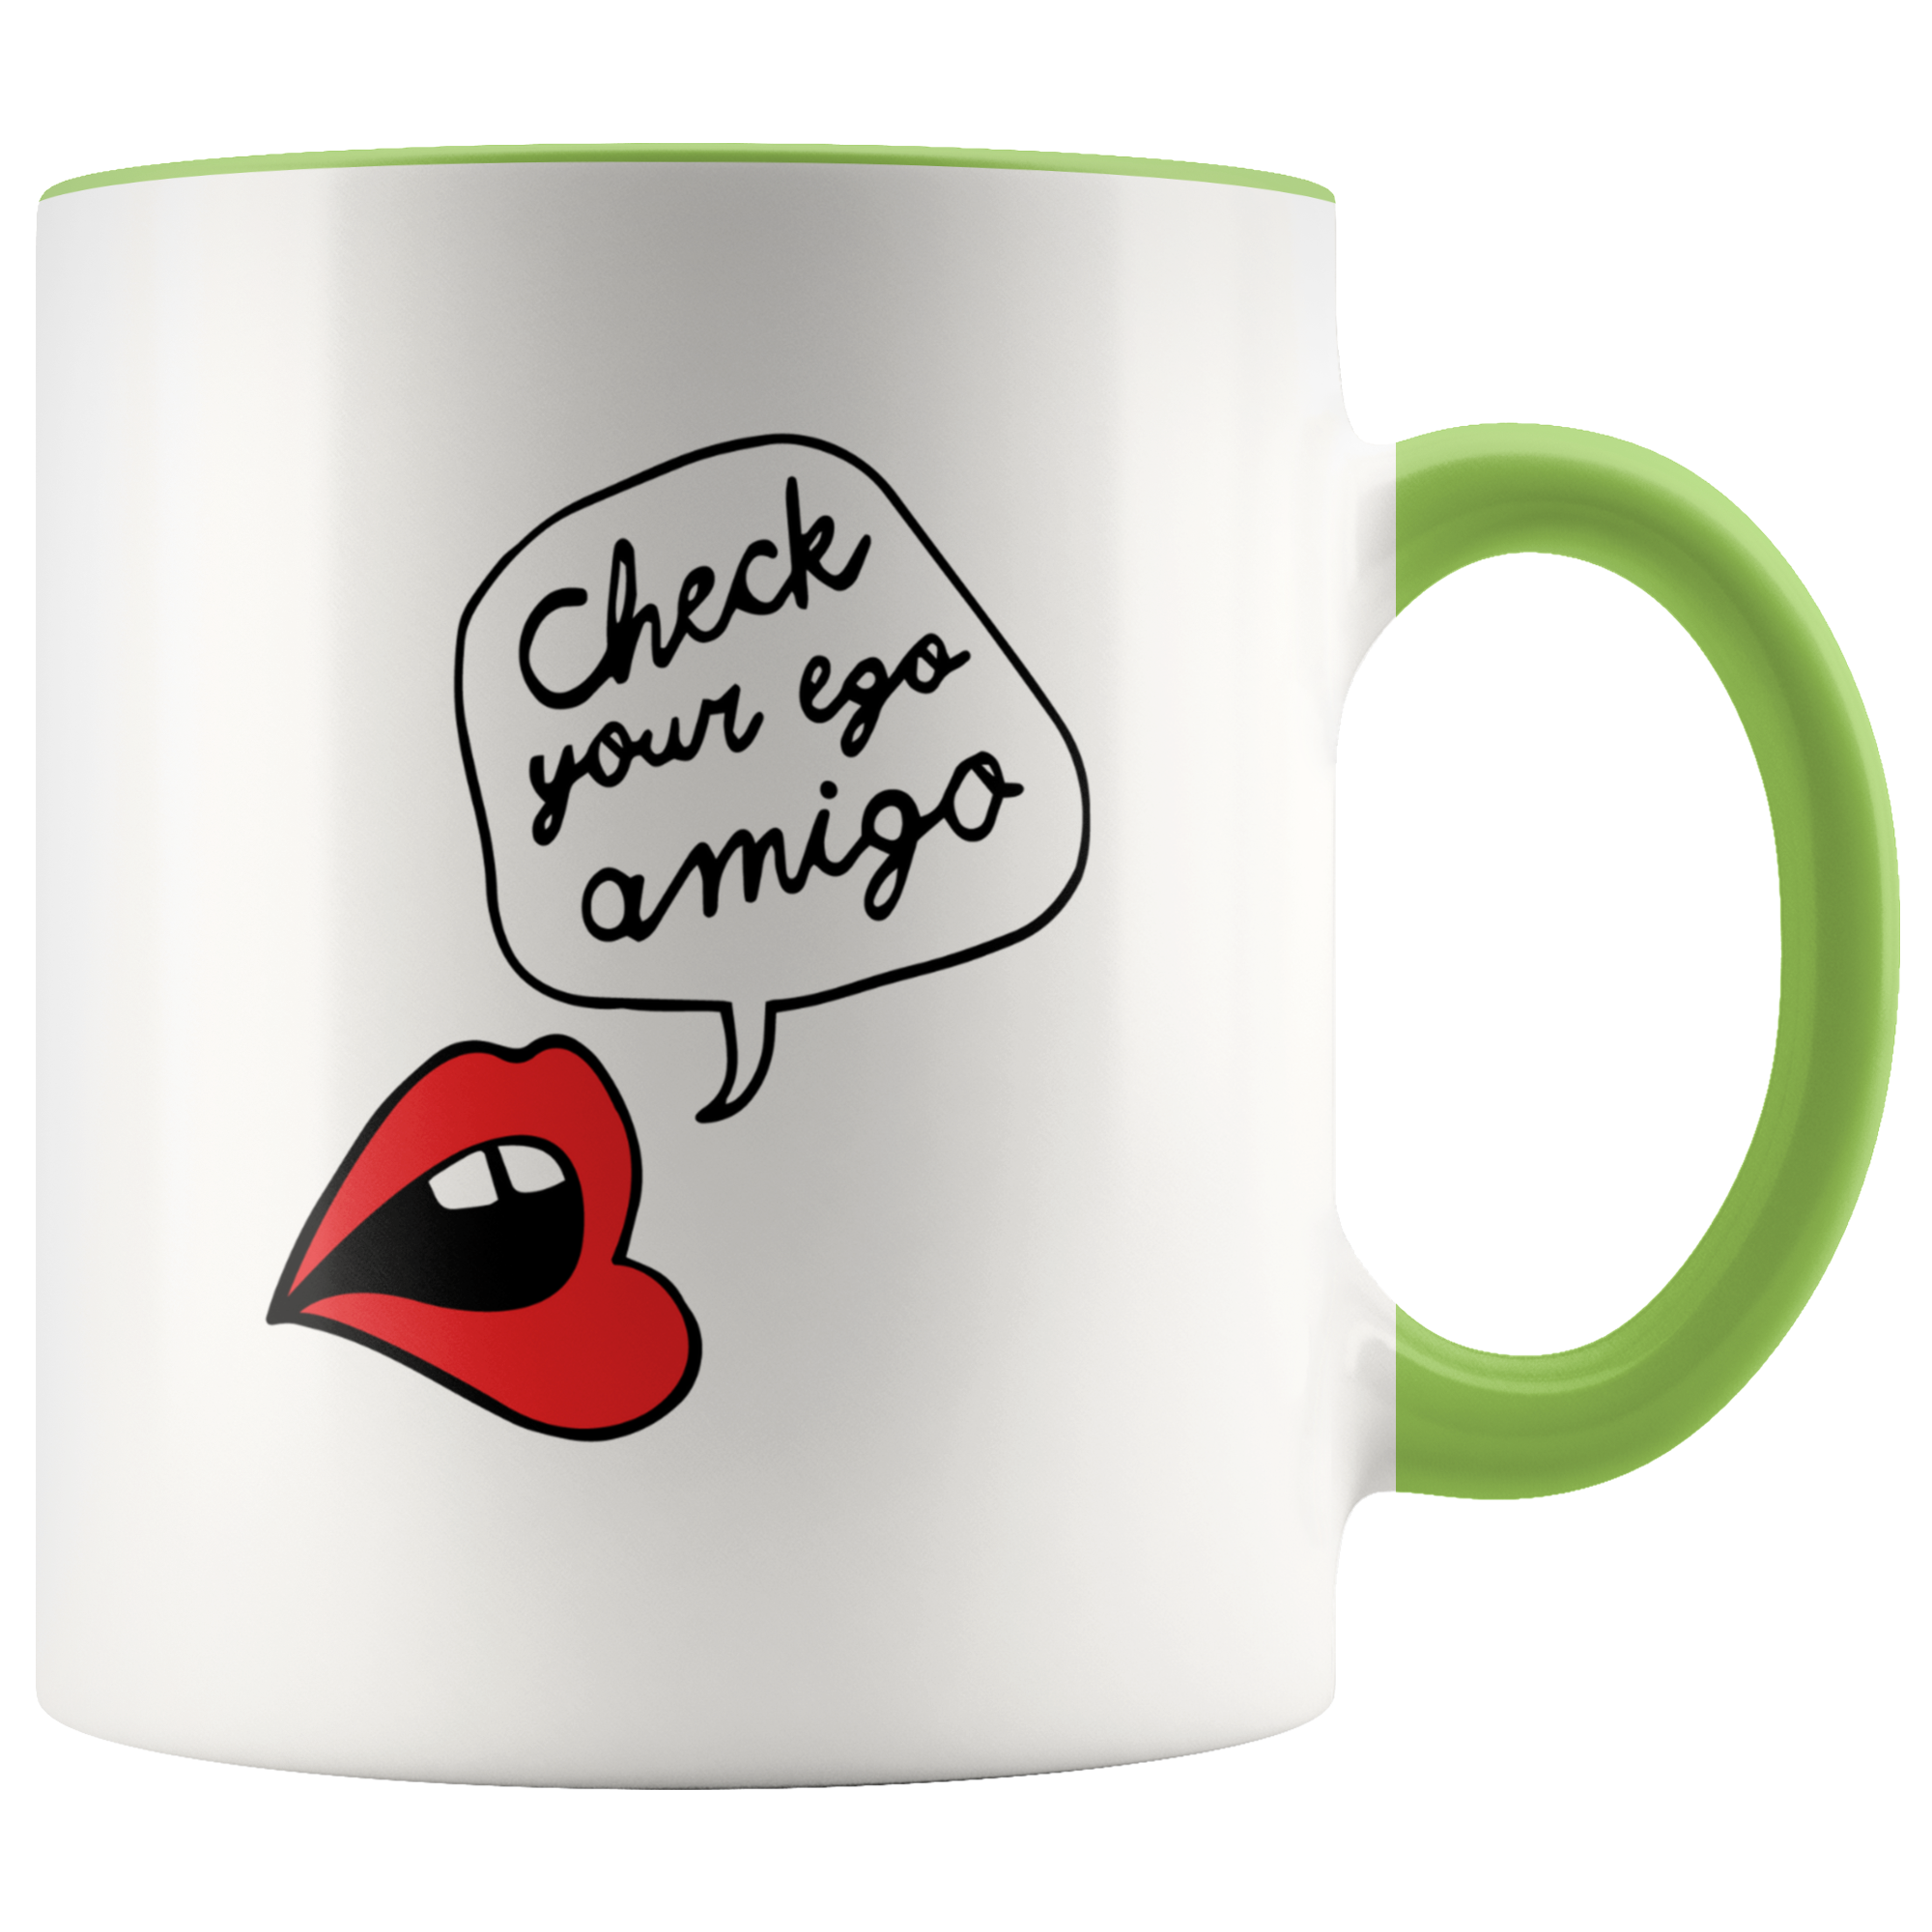 Check Your Ego Amigo 11oz White Accent Mug